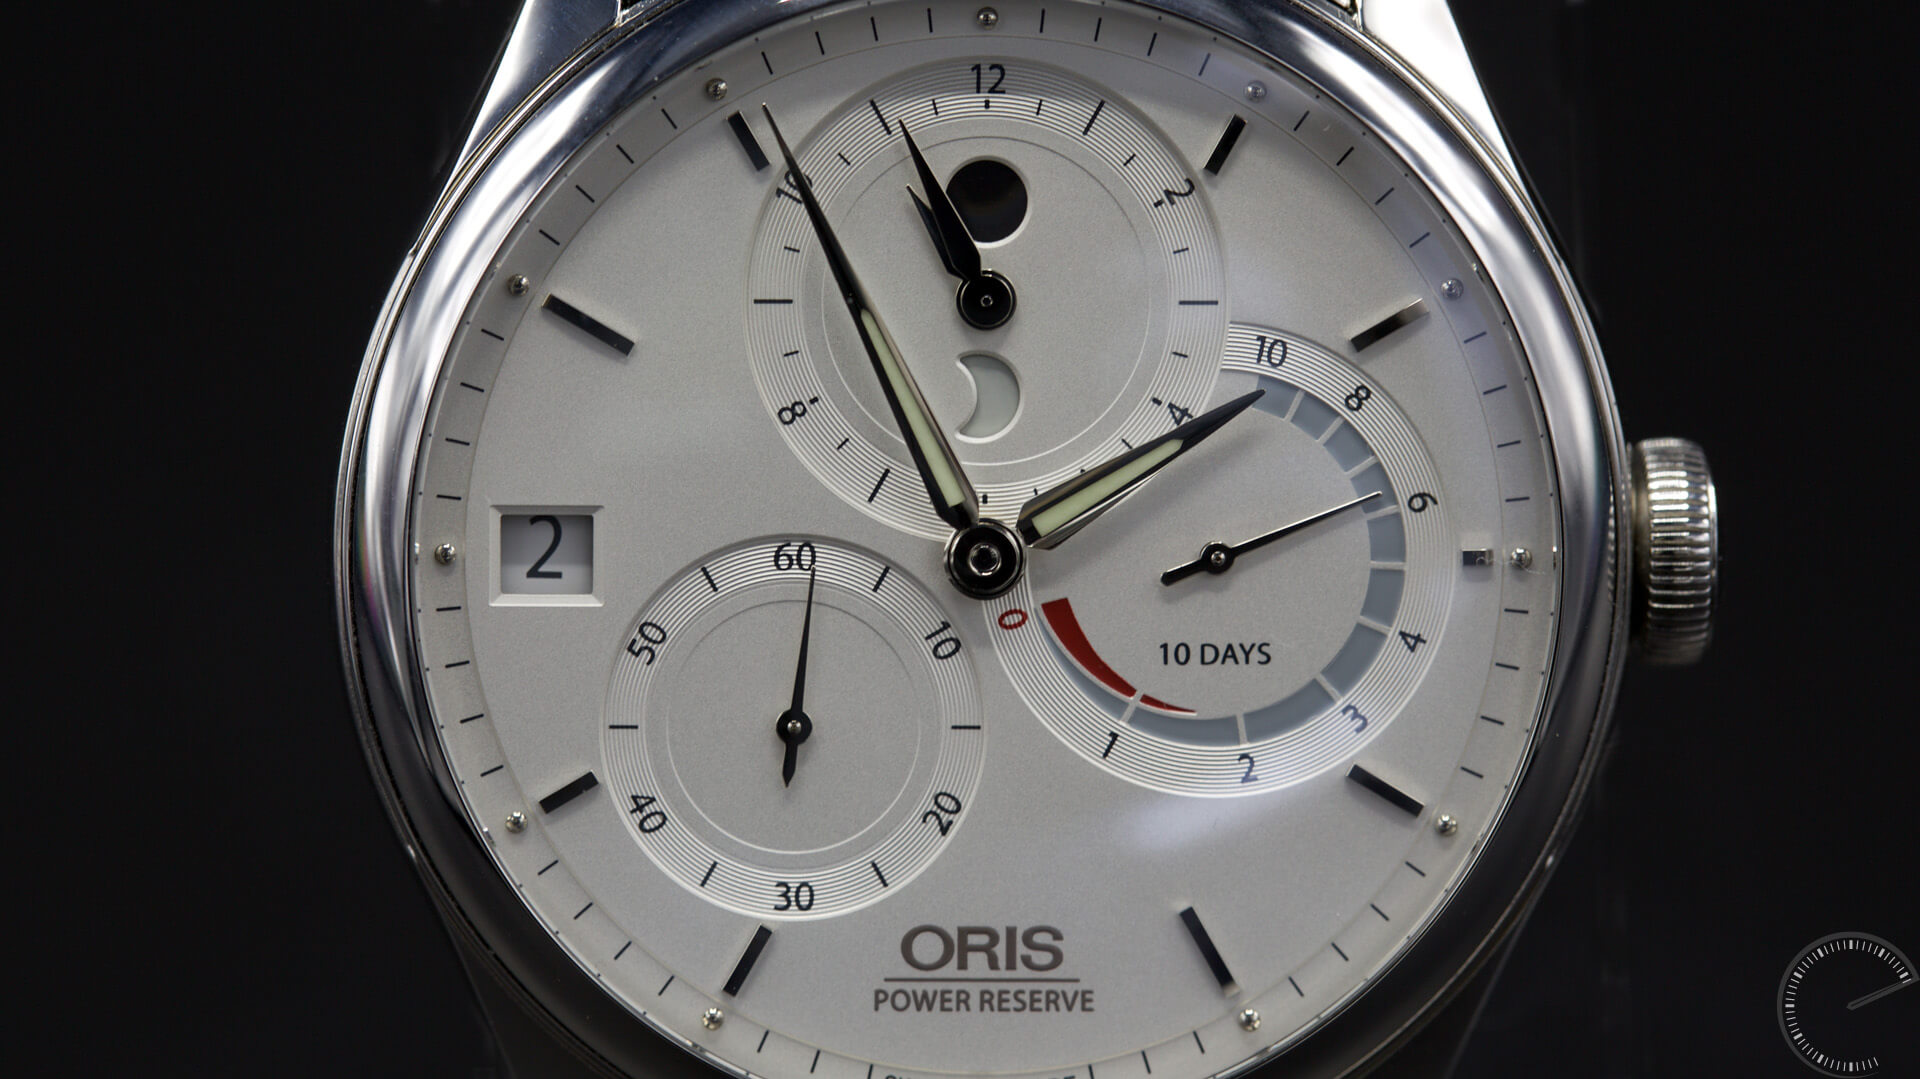 Oris_Artelier_Calibre_112_dial1 - ESCAPEMENT MAGAZINE - watch reviews by Angus Davies